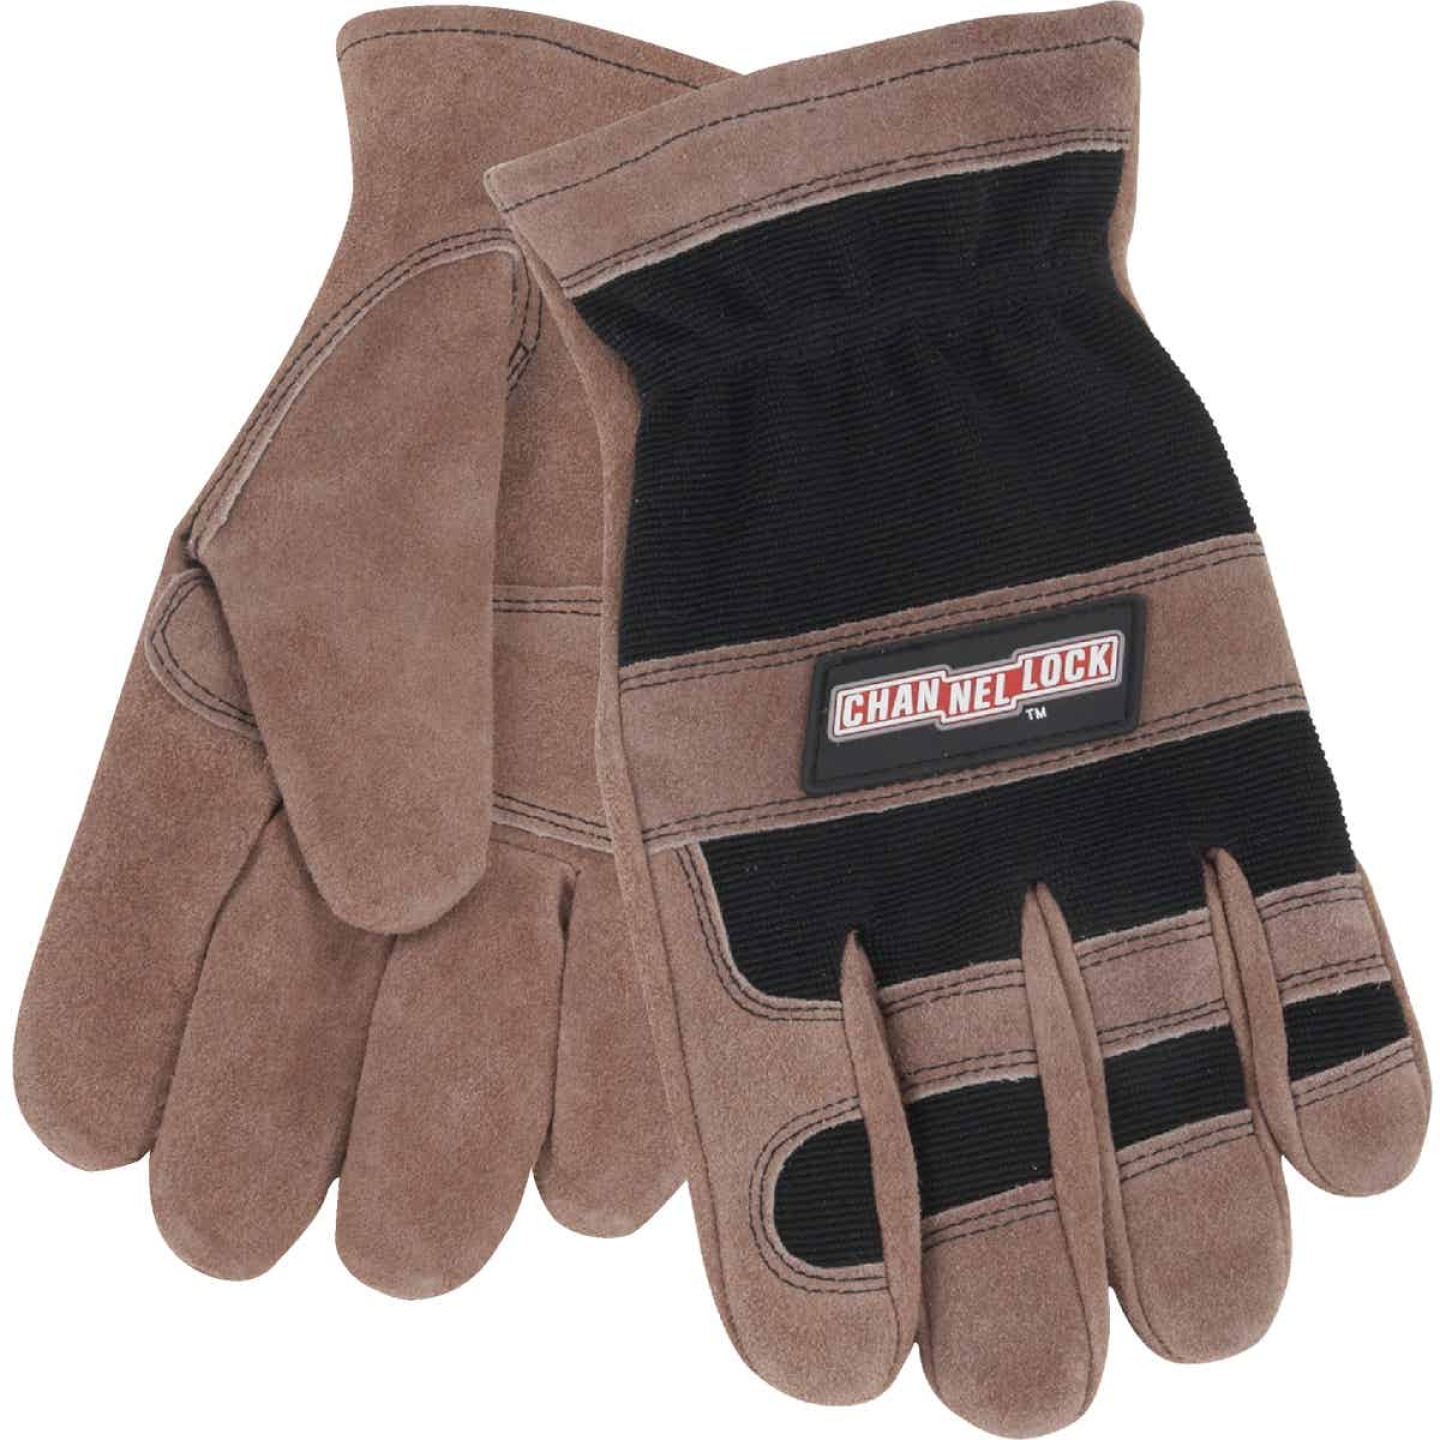 Channellock Men's Large Leather Work Glove Image 1